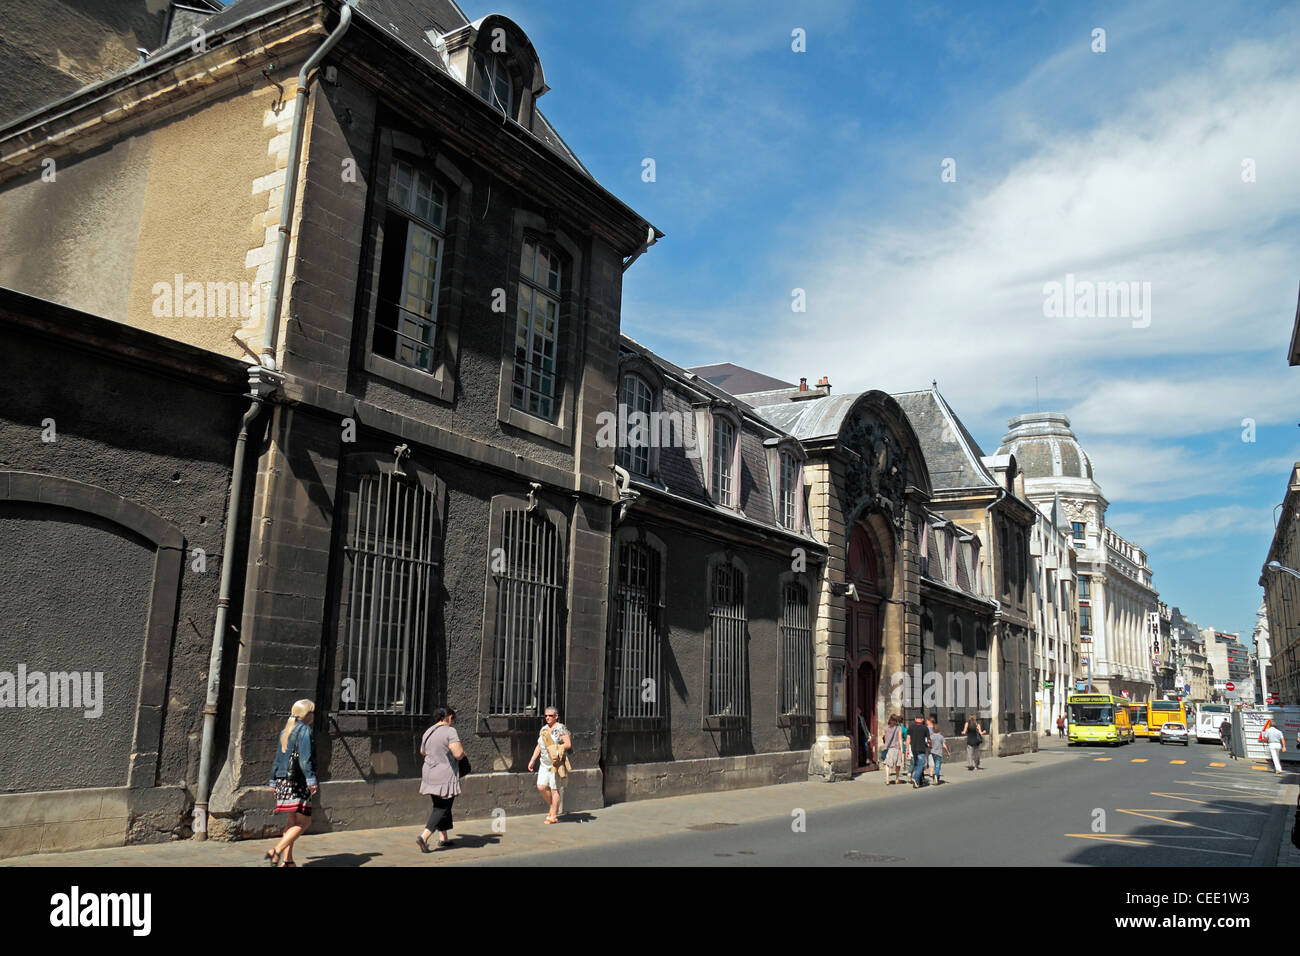 The Musée des Beaux-arts (The Museum of Fine Arts) in Reims, Champagne-Ardenne, France. Stock Photo